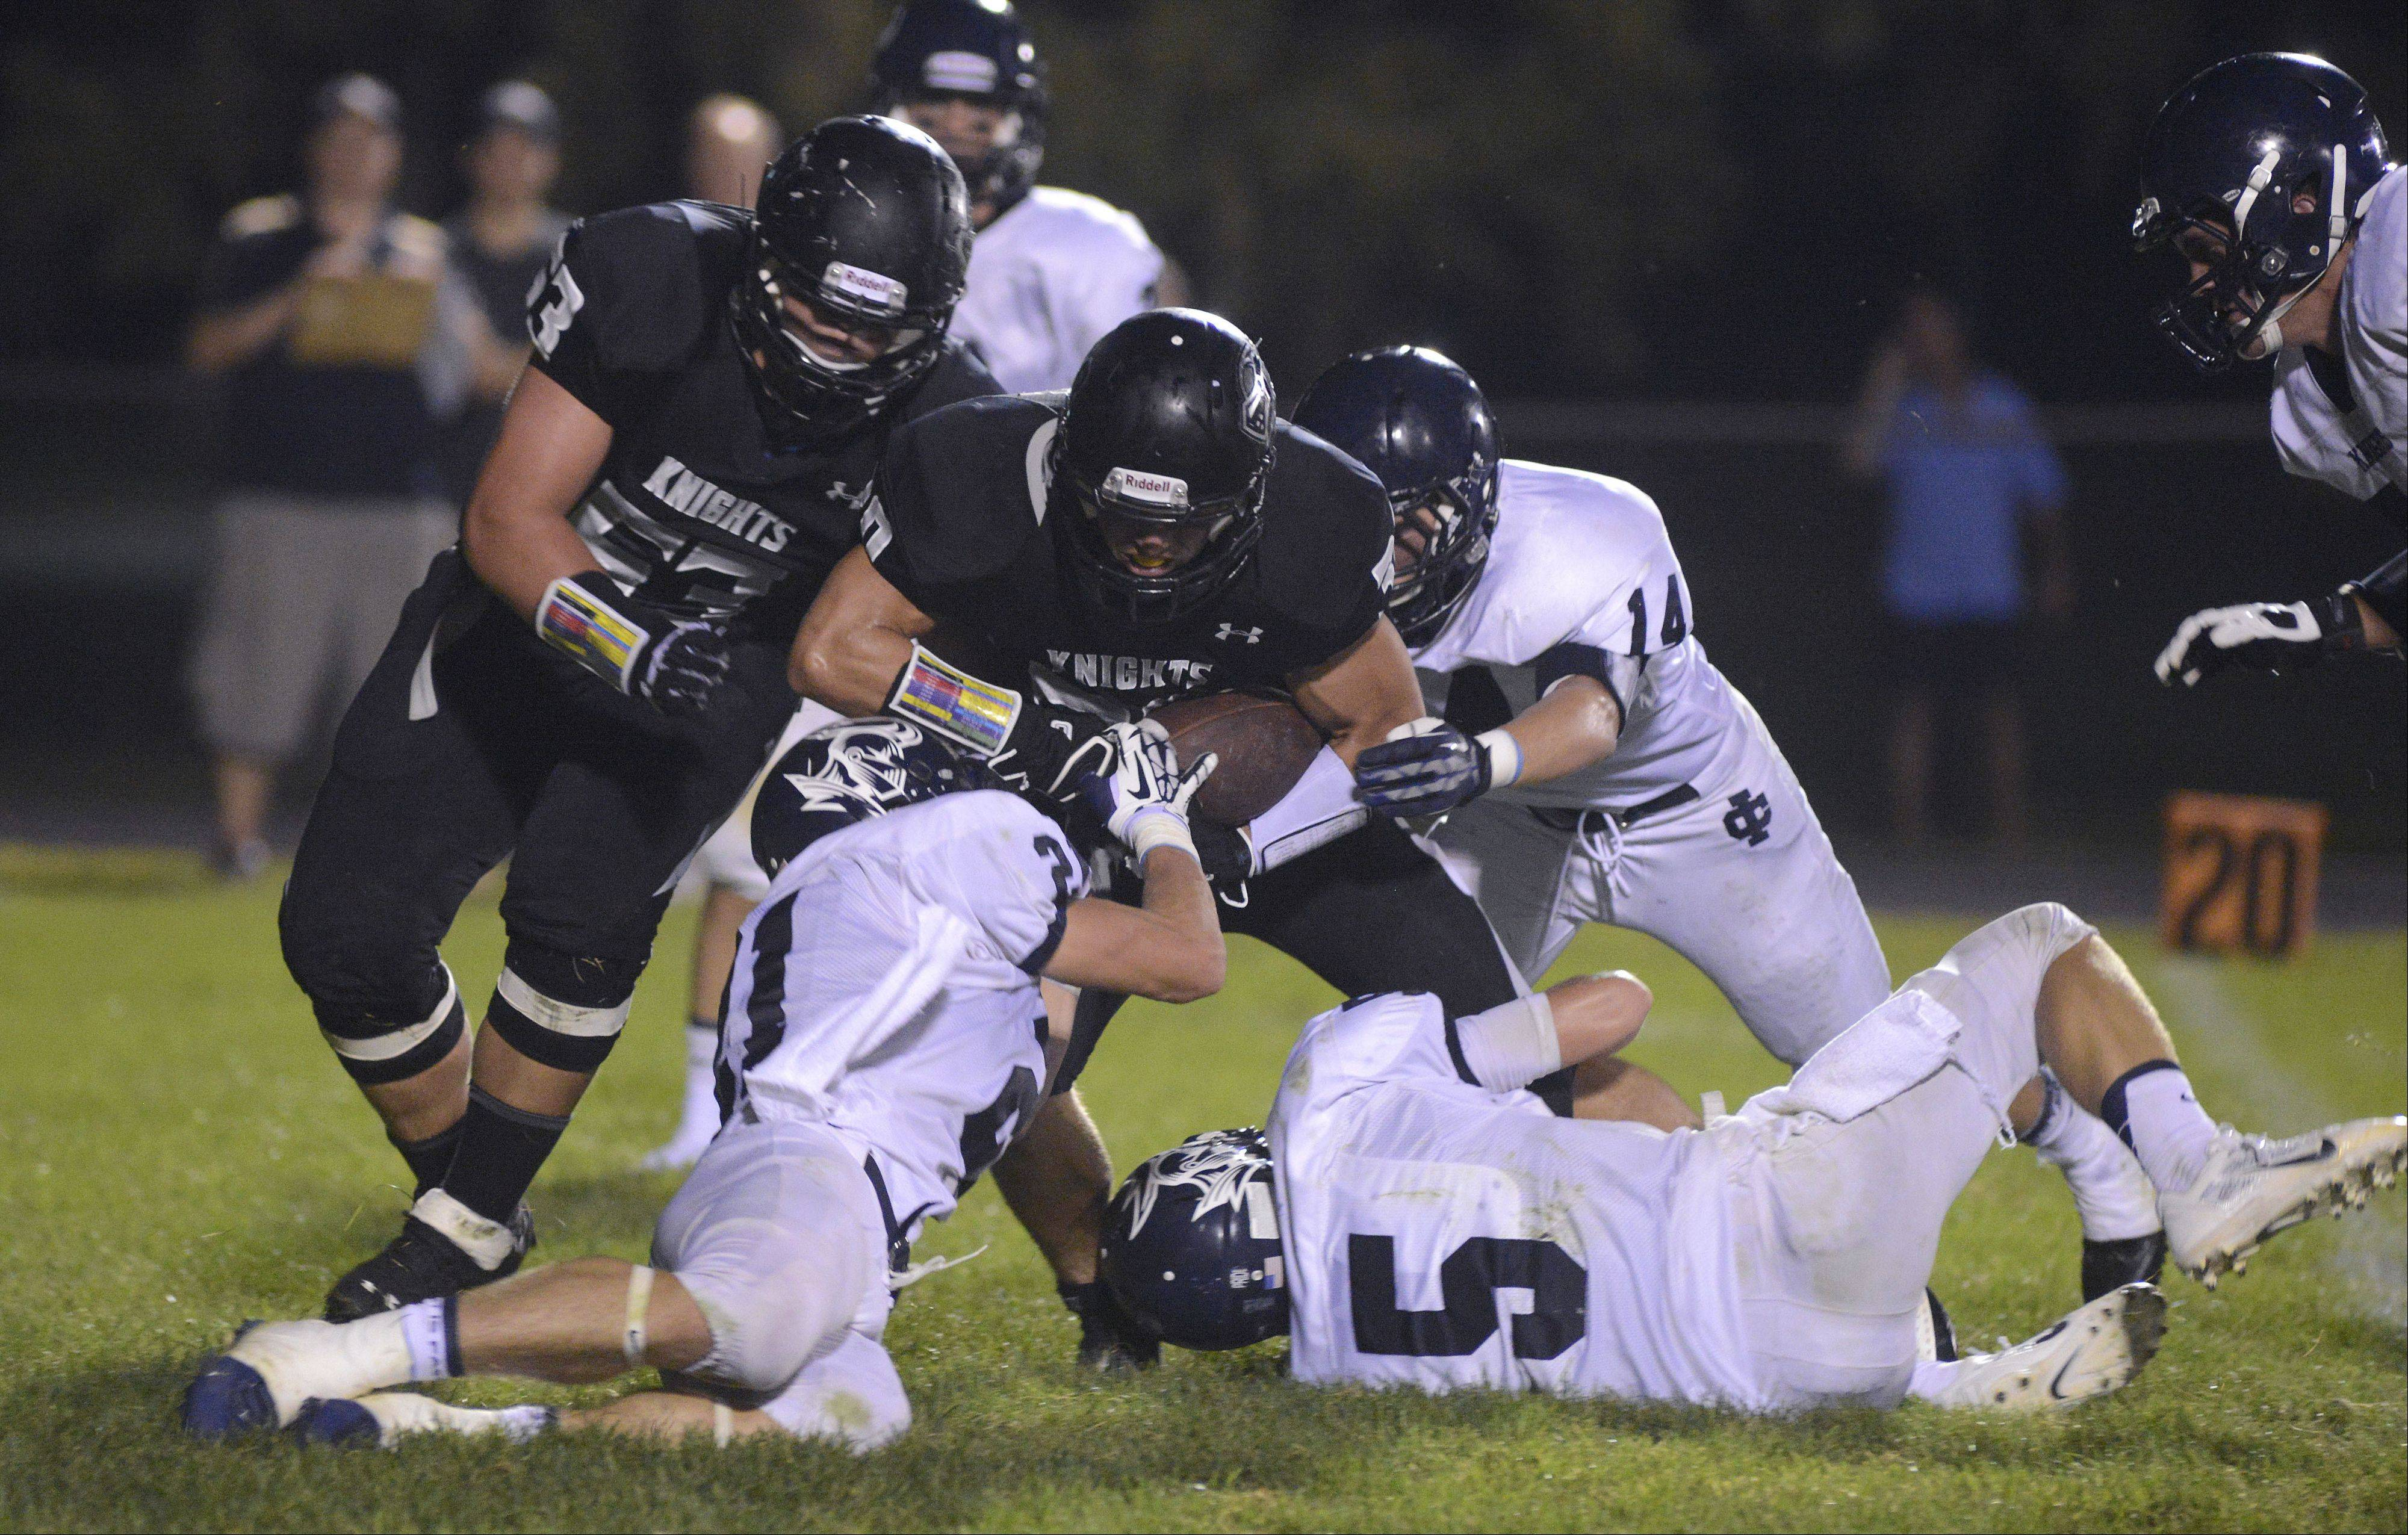 Kaneland's Jesse Balluff hunkers down with the ball while being tackled by IC Catholic Prep's James Janowski, Sean Sutton , and Max Eichhorn in the first quarter.